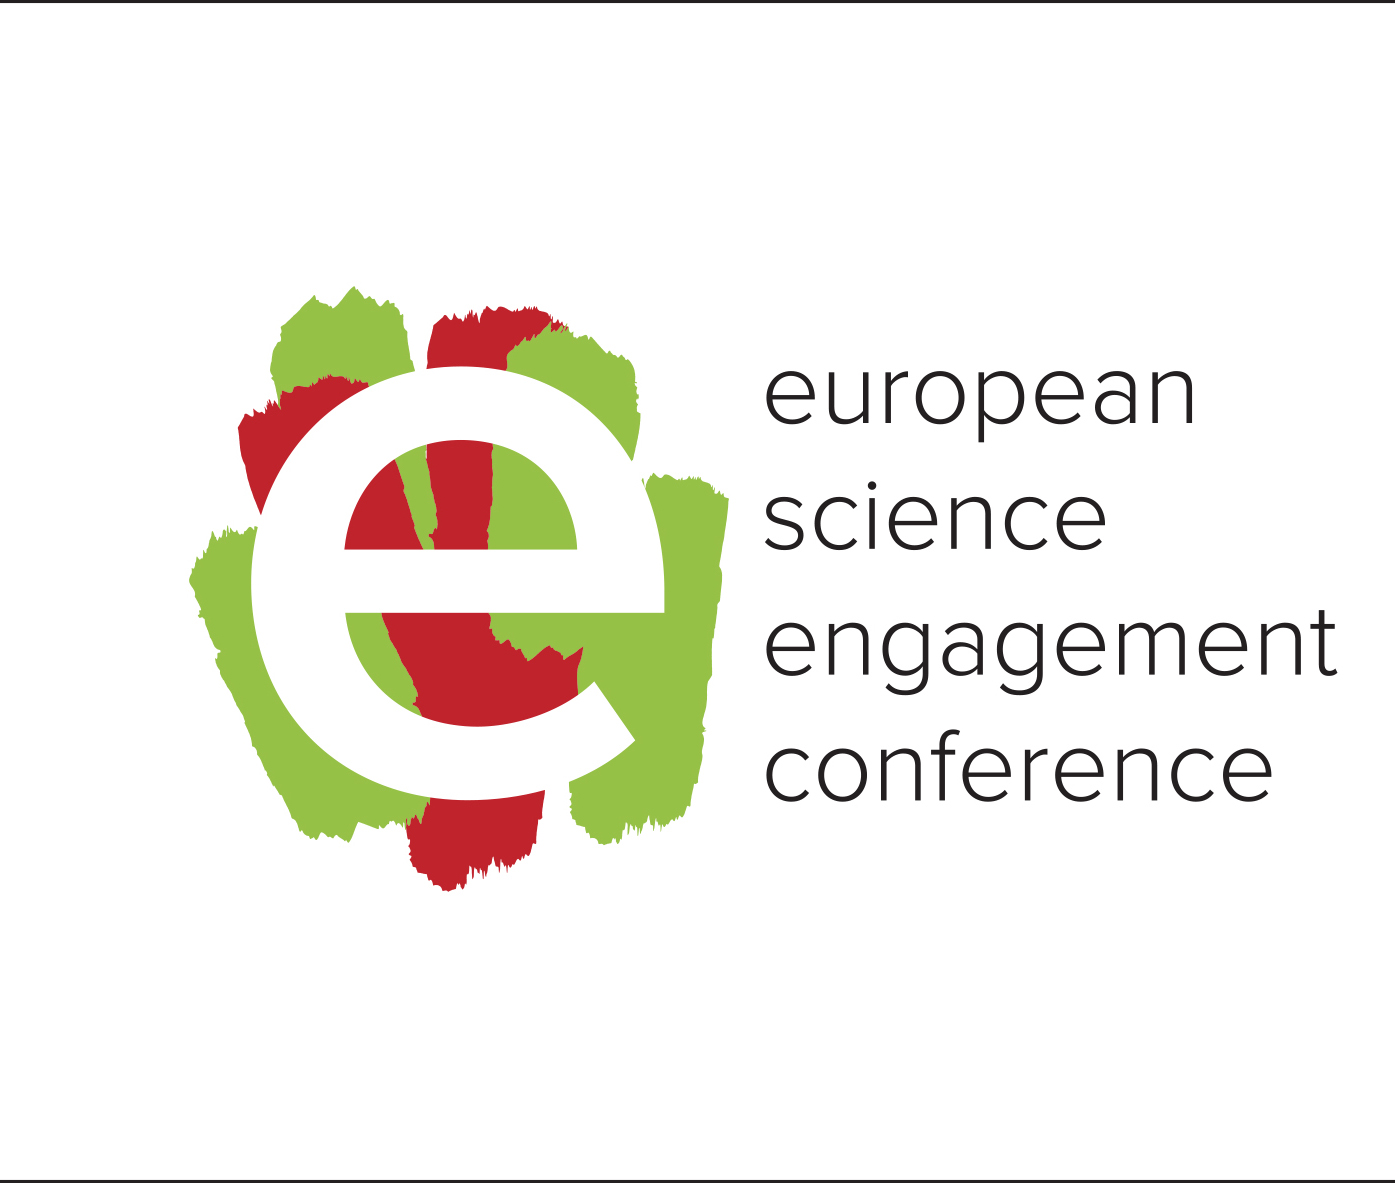 EUROPEAN SCIENCE ENGAGEMENT CONFERENCE